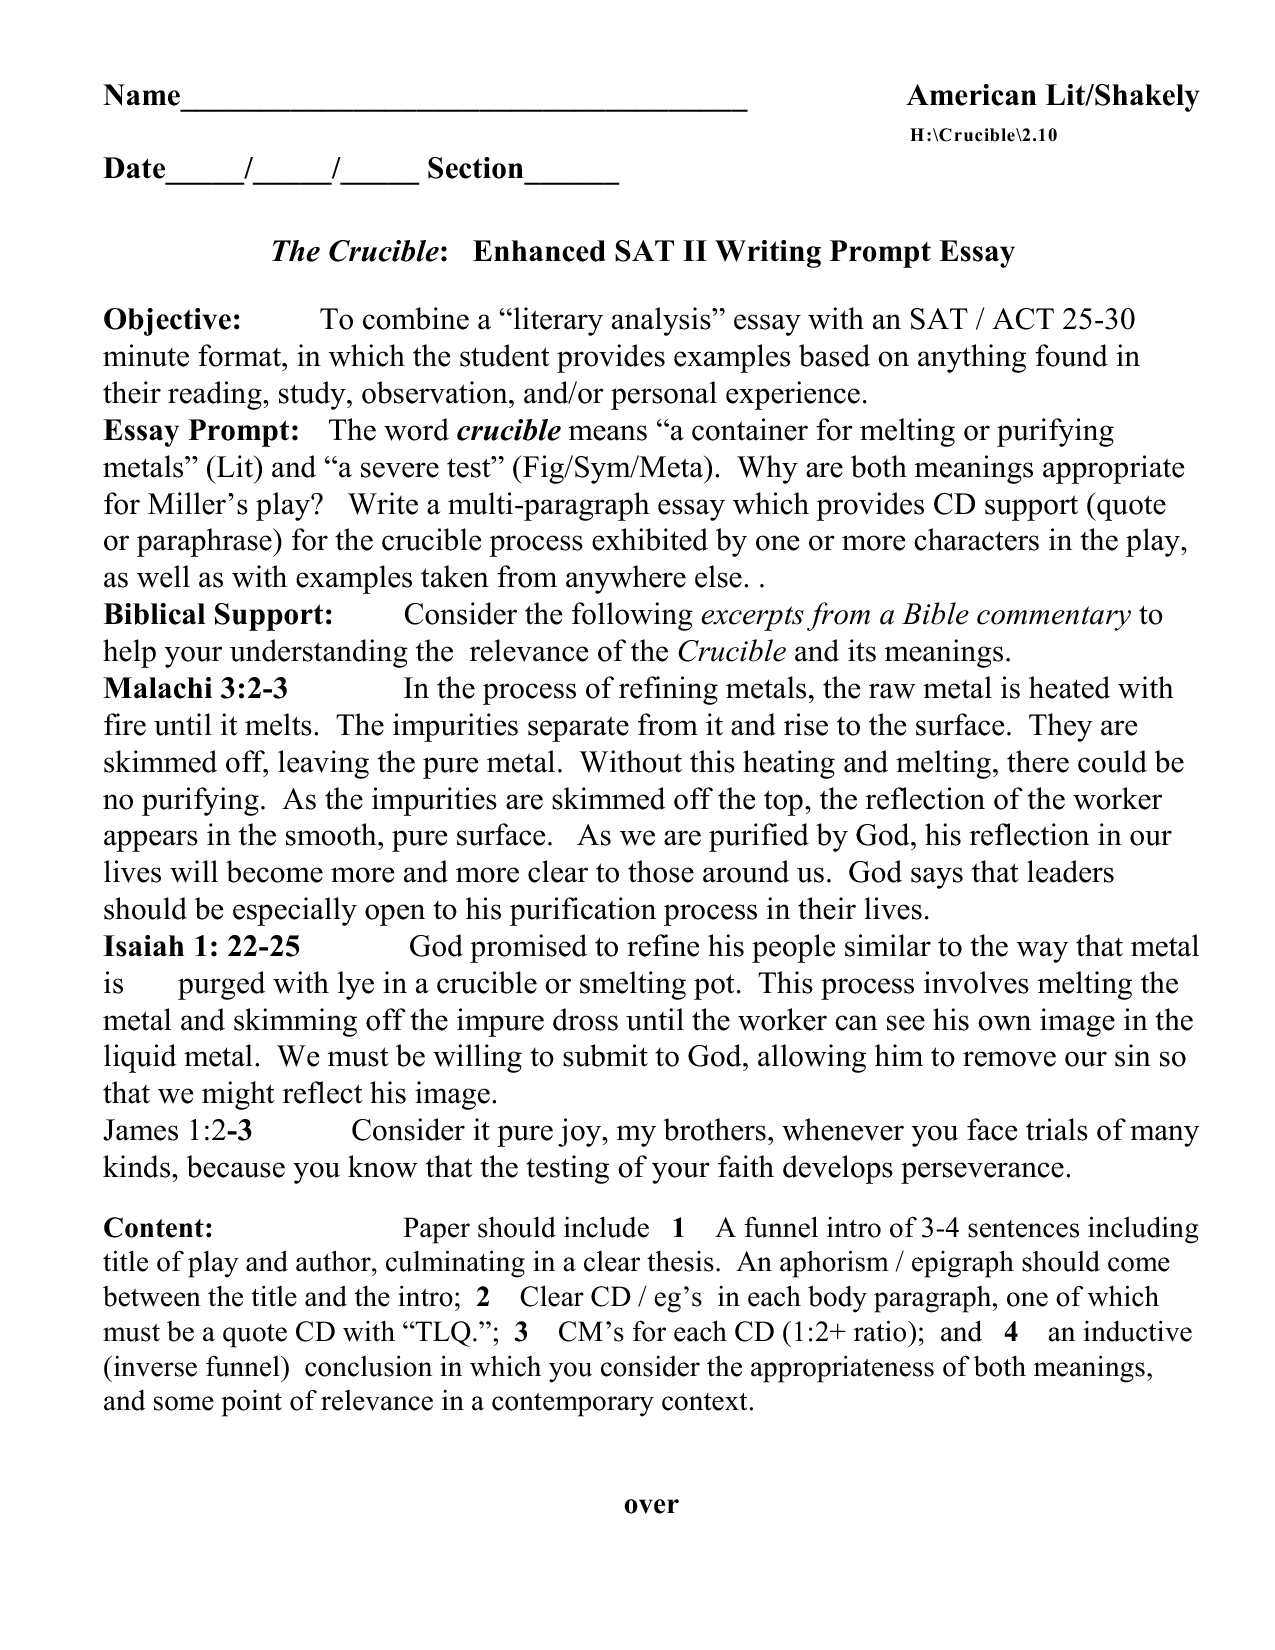 sat essay prompts for practice 11 free sat writing practice tests and sat essay writing advice to help your sat prep plus learn more about the sat writing sections.